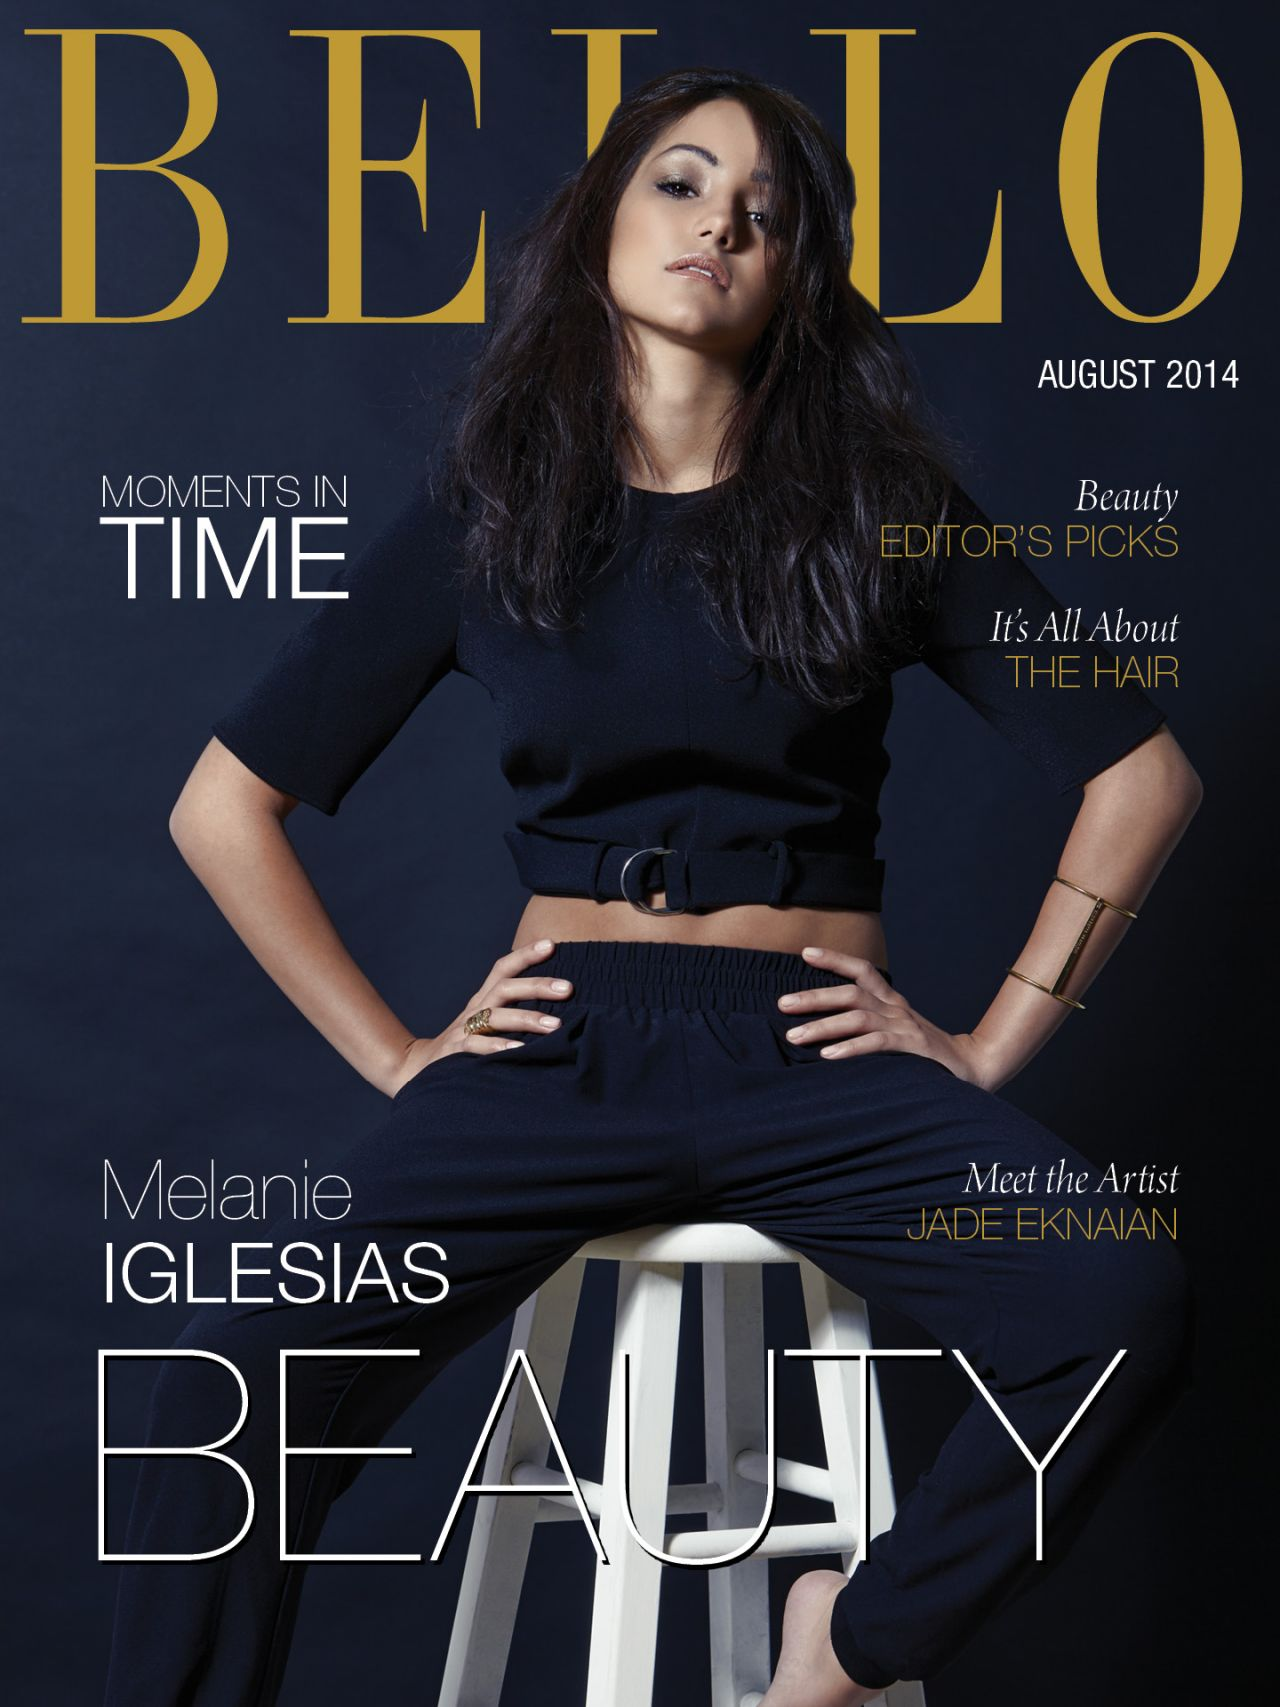 Melanie Iglesias - BELLO Magazine August 2014 Cover